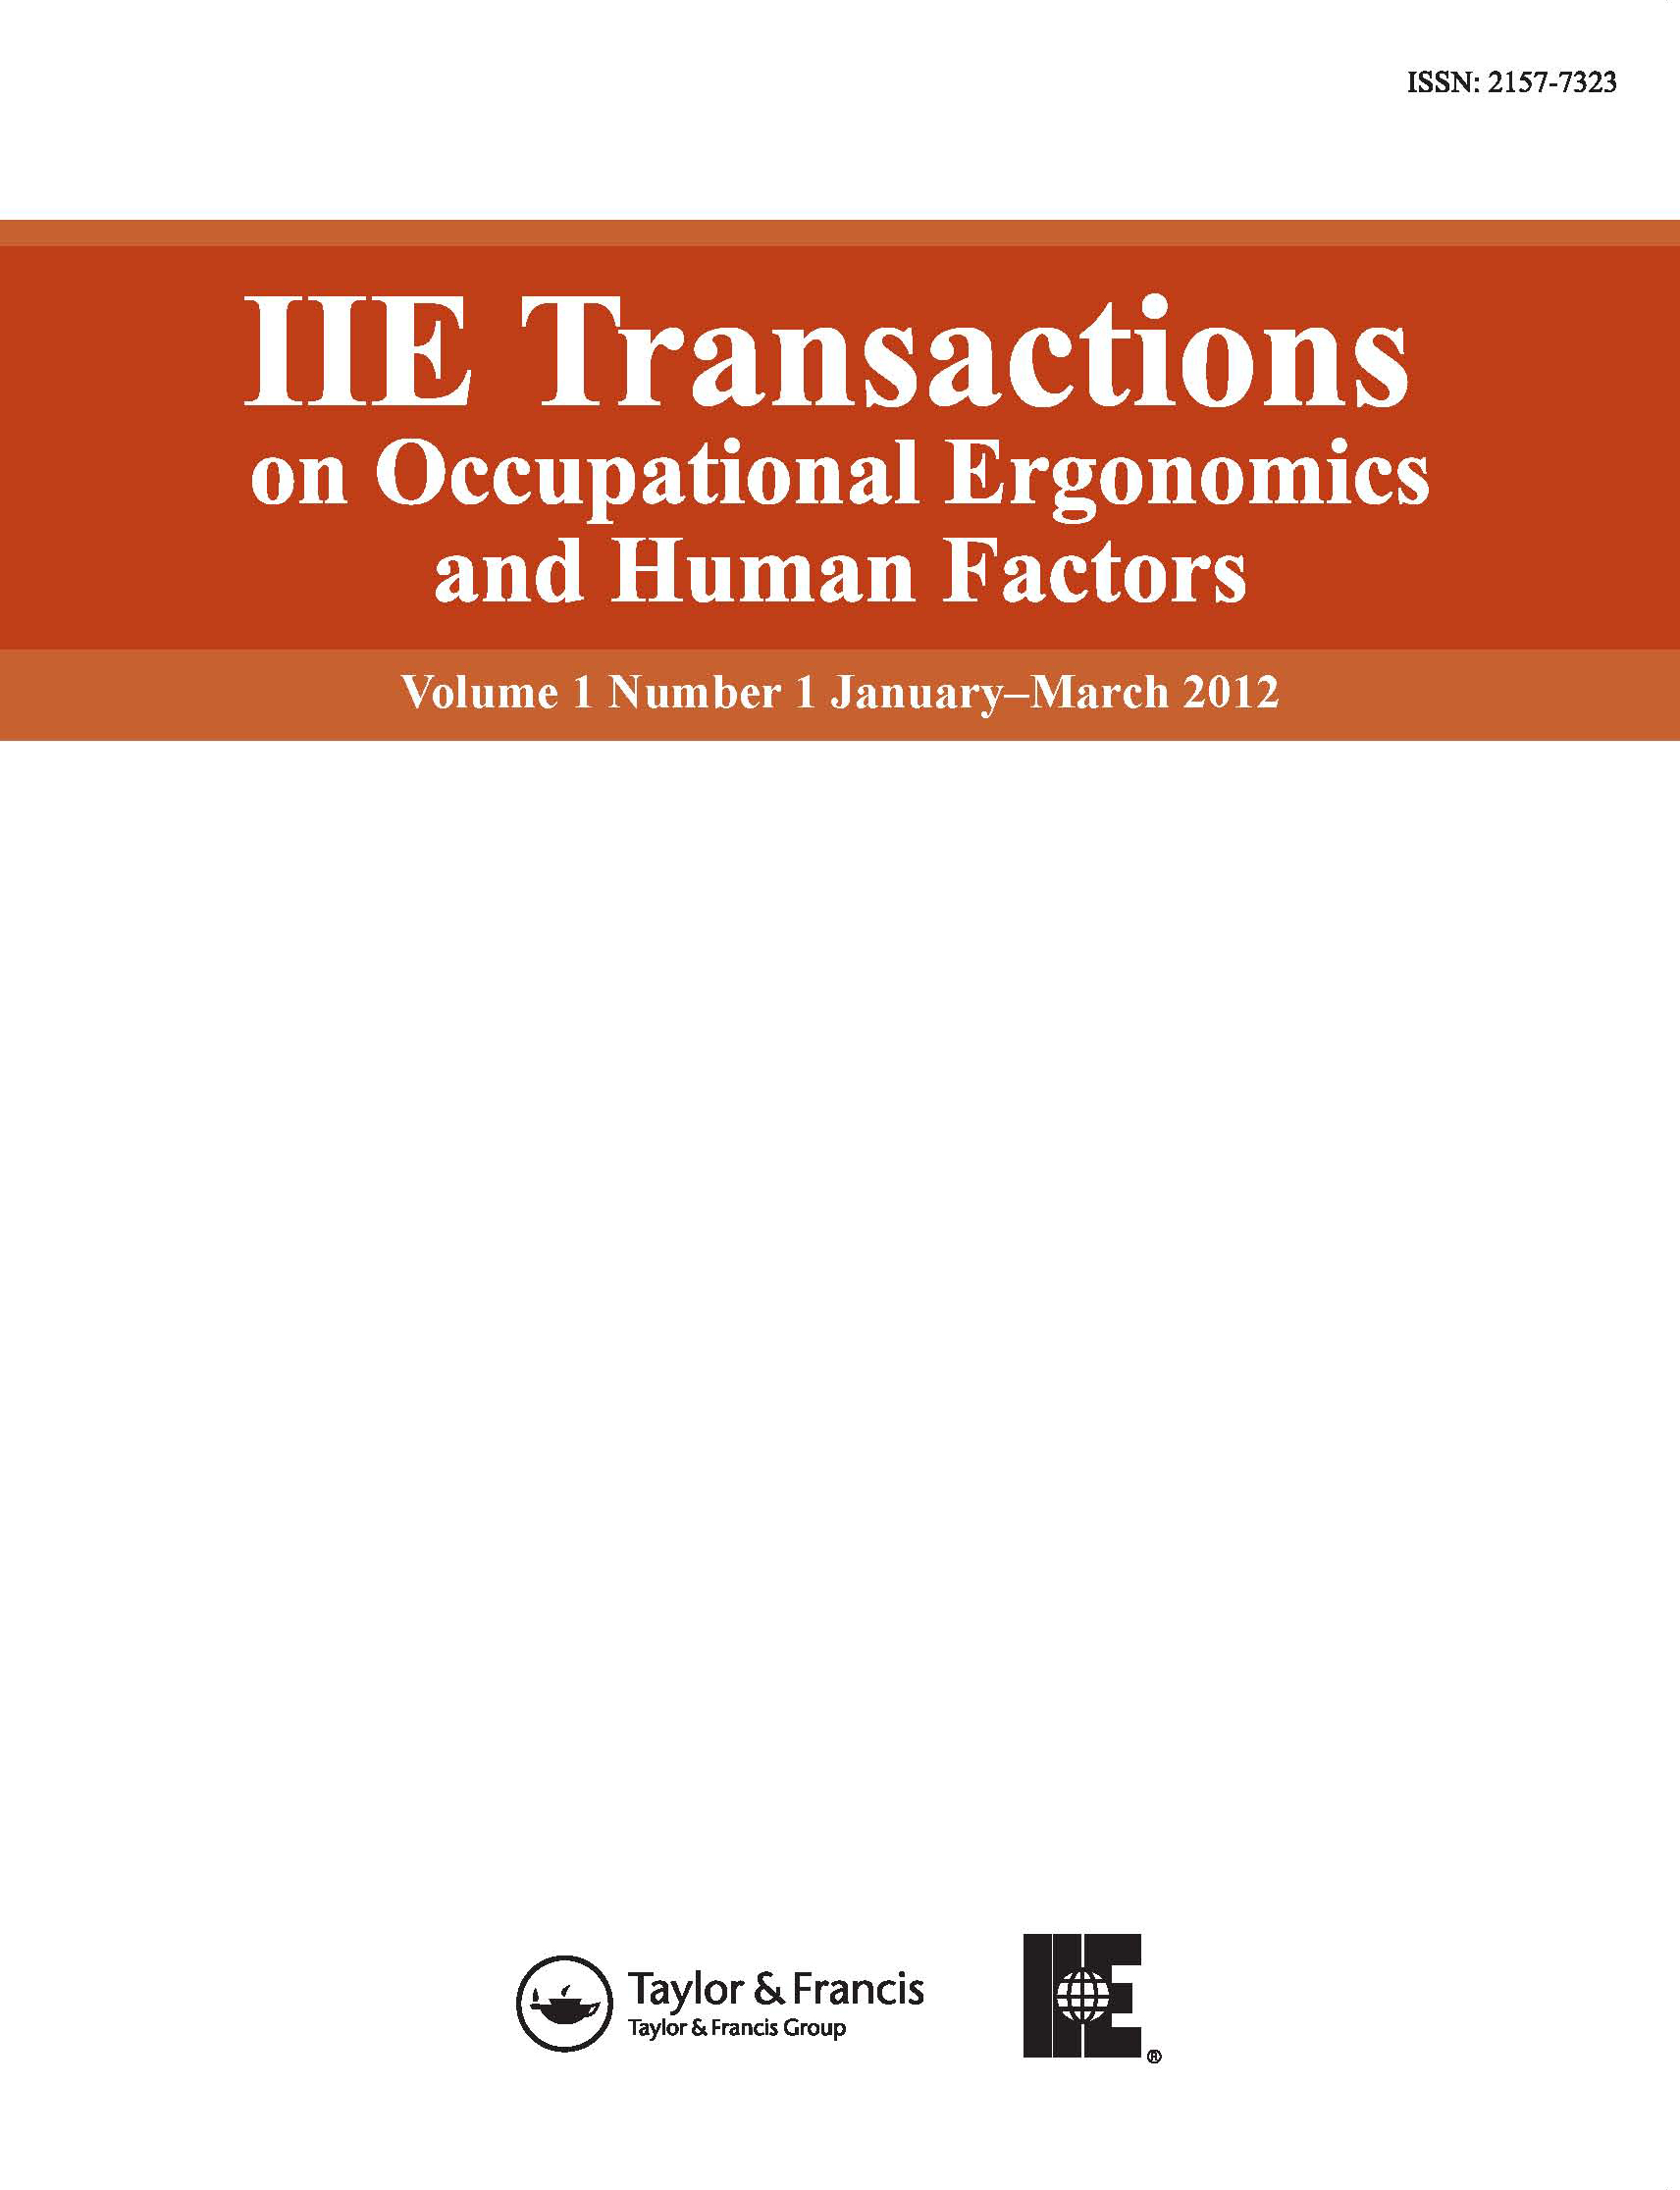 IIE Transactions on Occupational Ergonomics and Human Factors